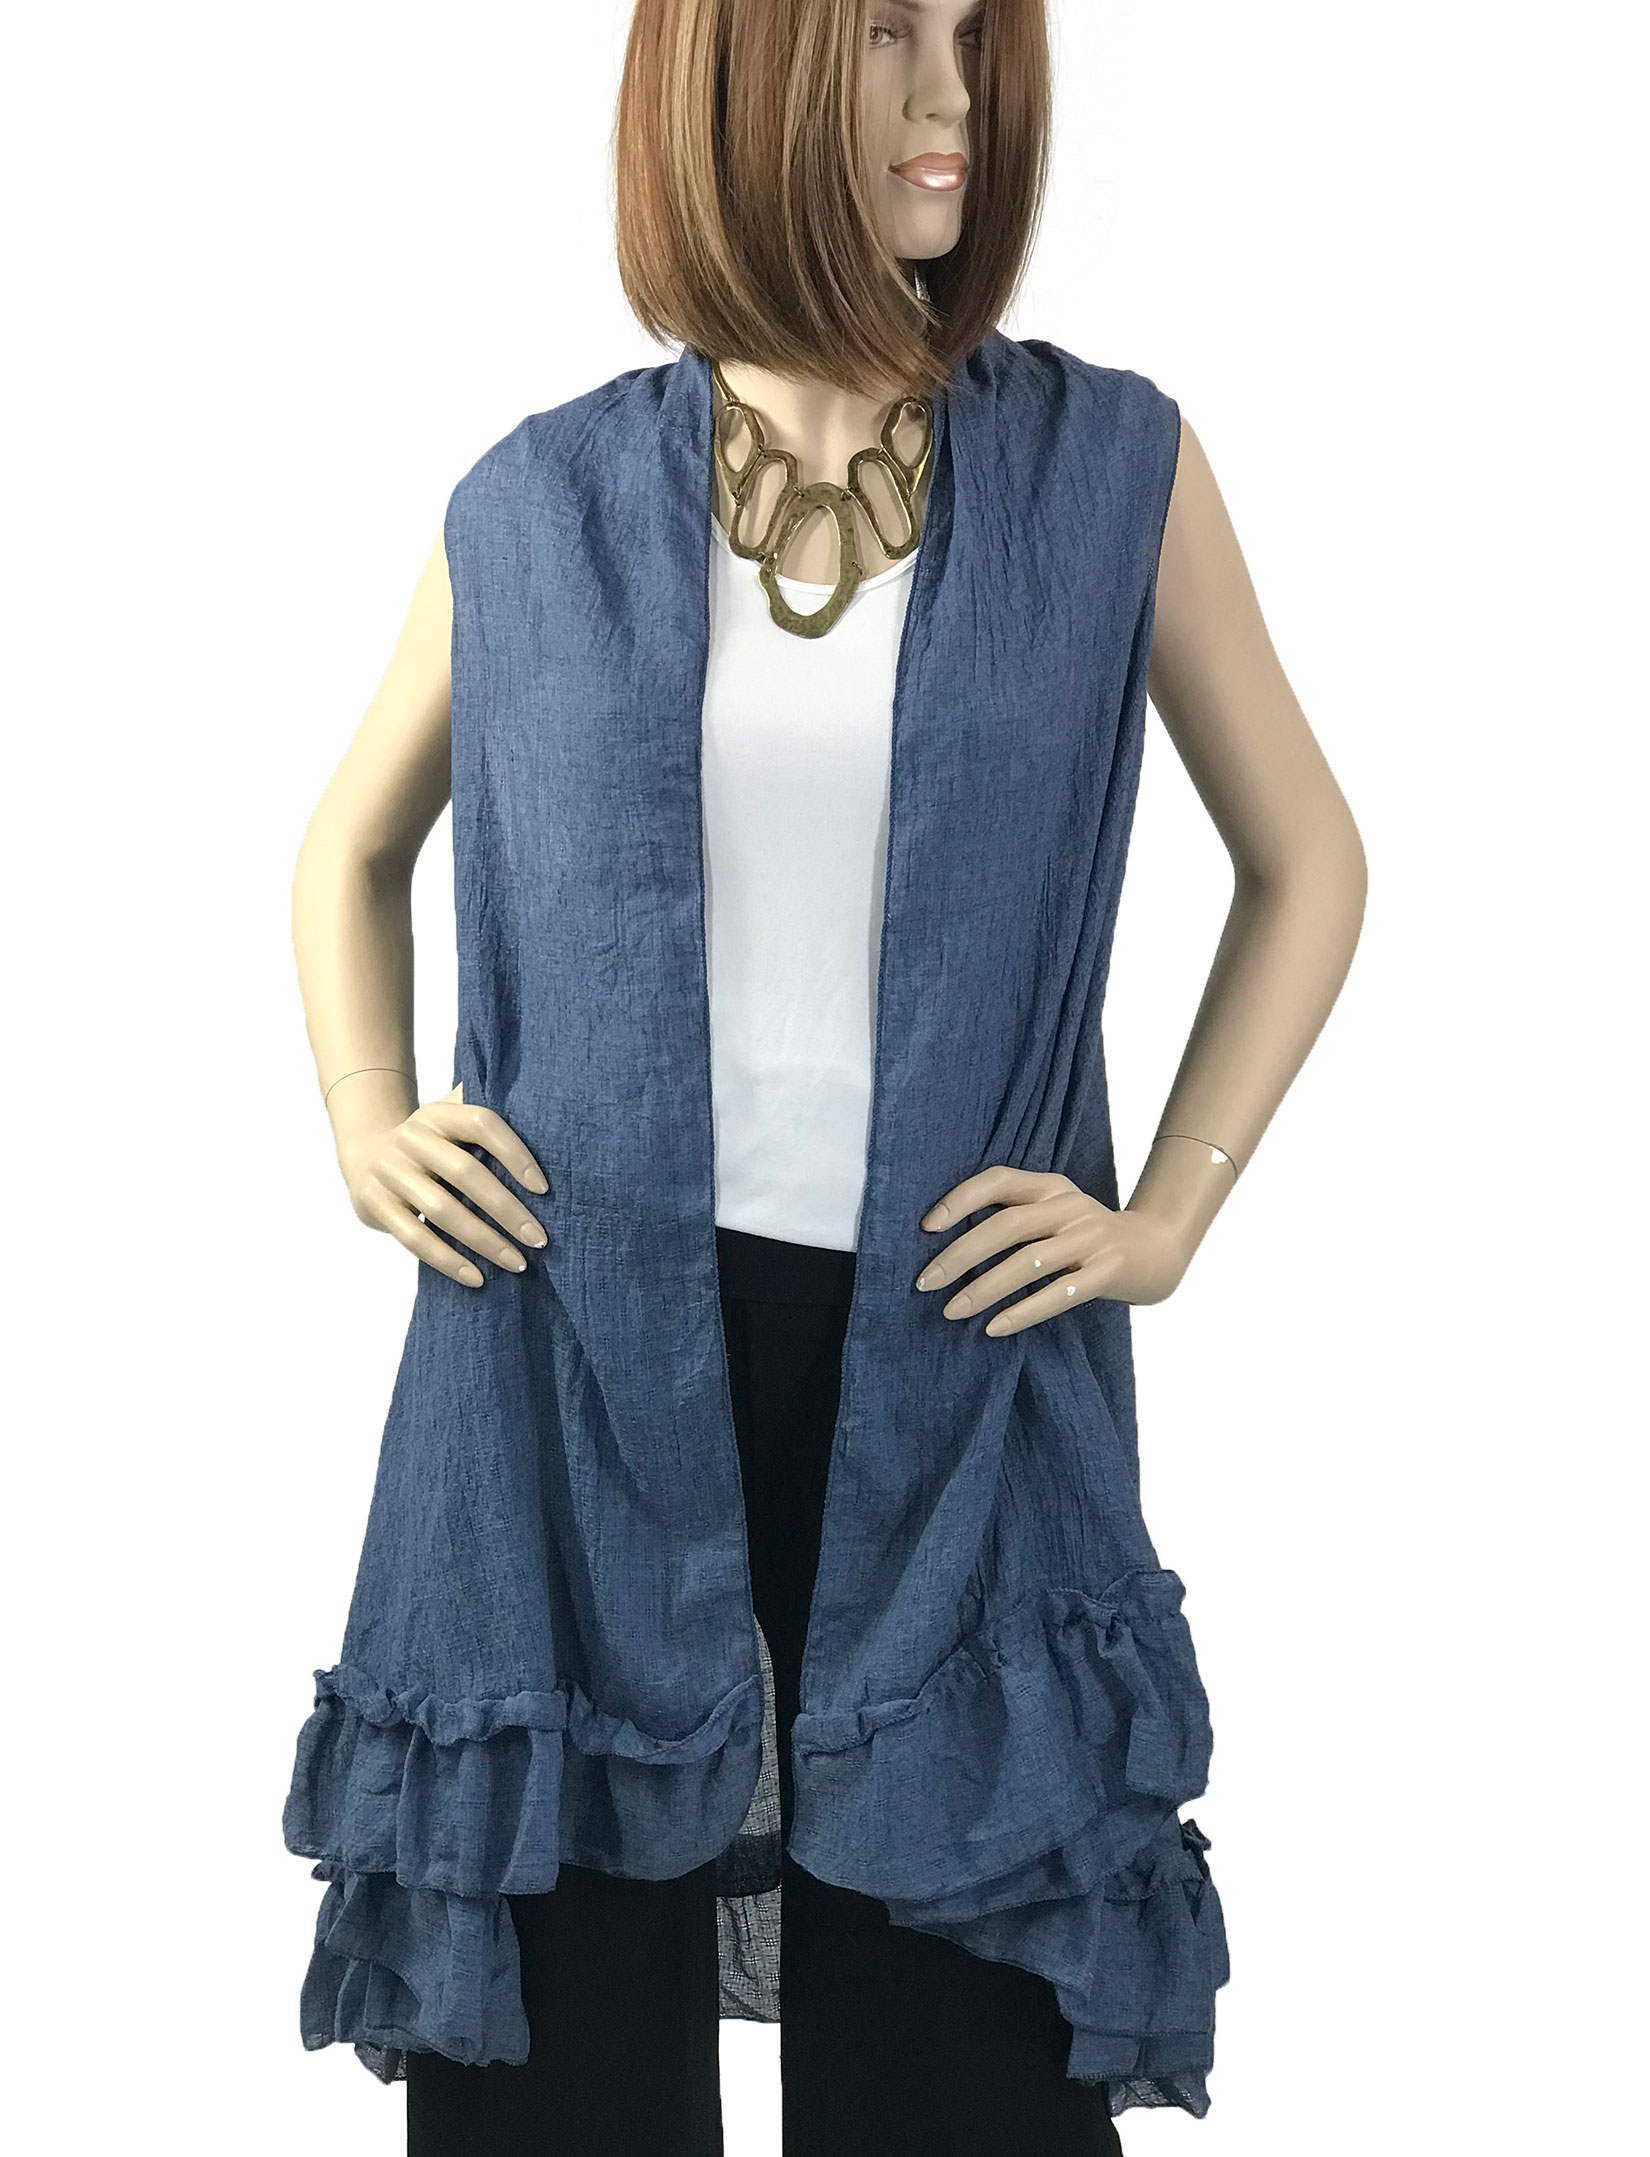 wholesale Vests - Summer Weight w/ Ruffled Bottom 1350